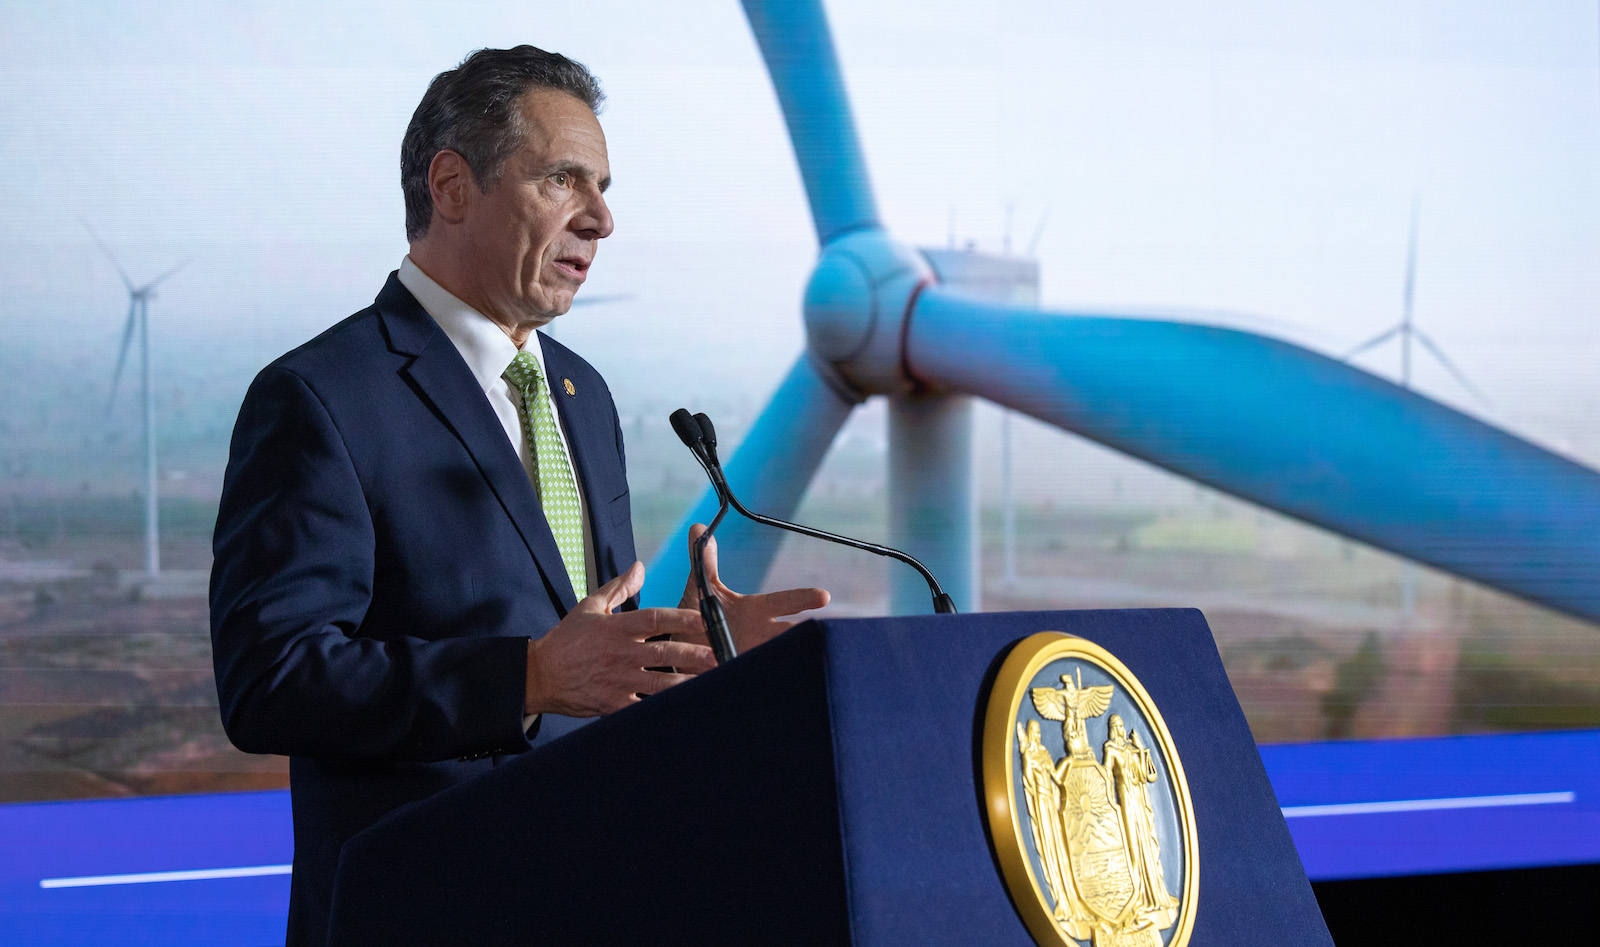 2 years after passing a landmark climate law, New York has no plan to fund it